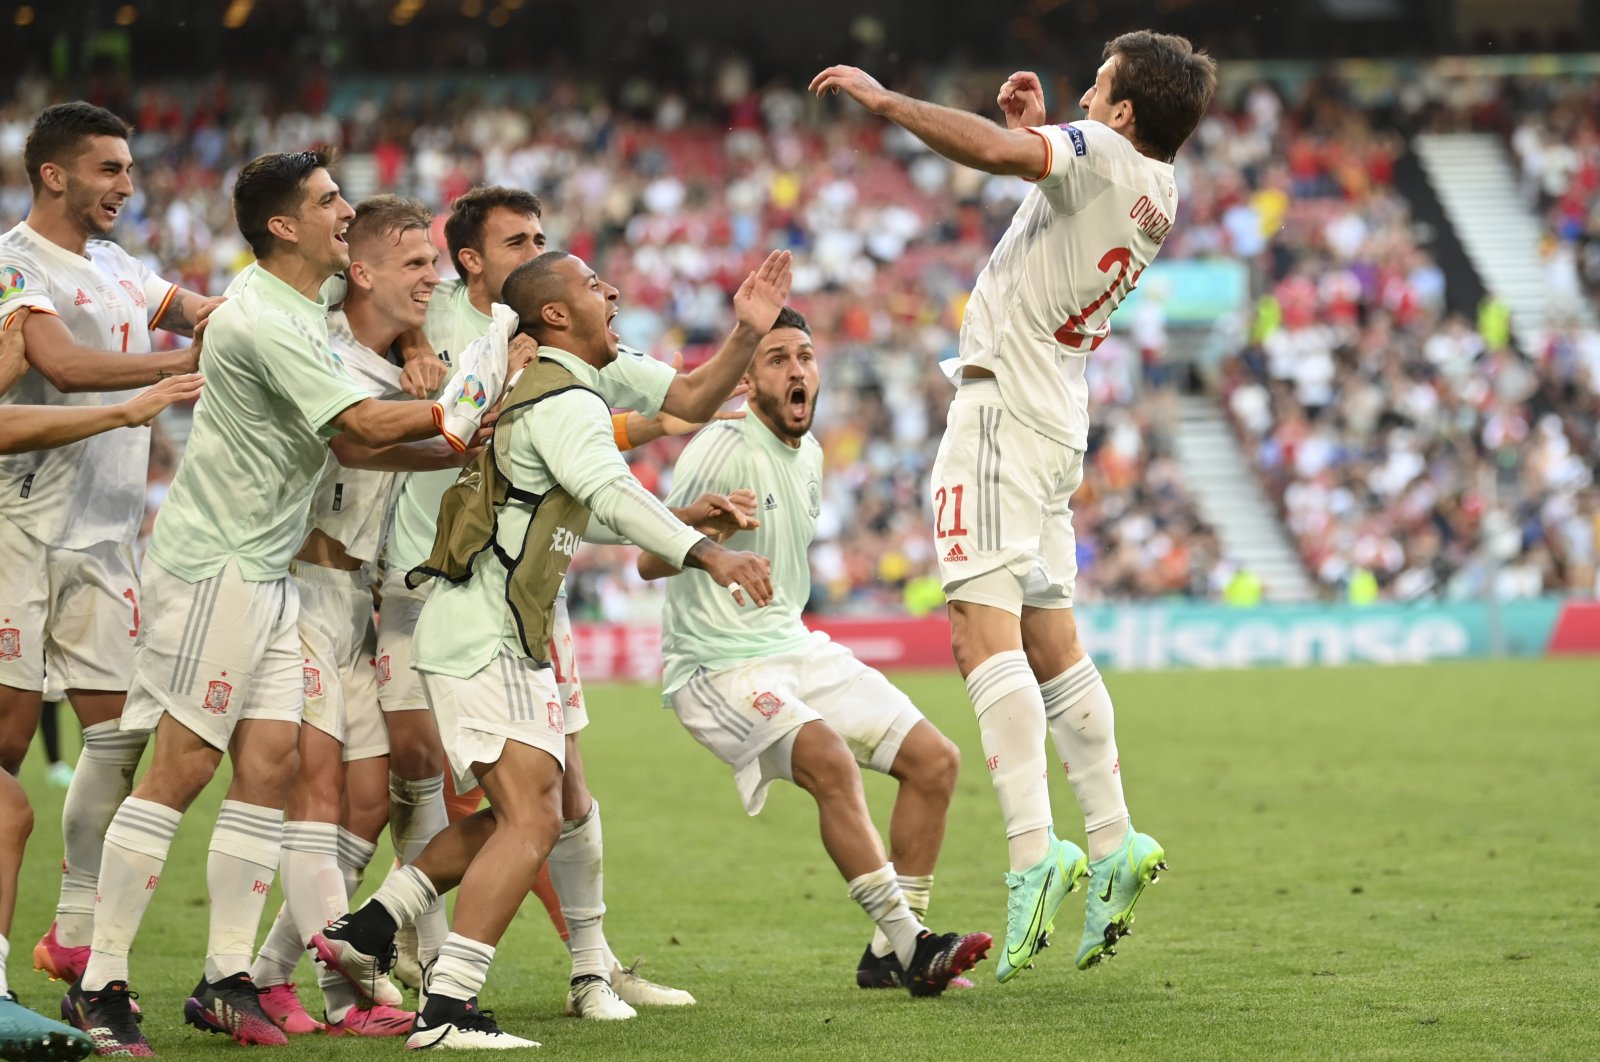 Spain's Mikel Oyarzabal (R) celebrates after scoring his side's fifth goal during the Euro 2020 soccer championship round of 16 match between Croatia and Spain at the Parken Stadium in Copenhagen, Denmark, June 28, 2021. (Pool Photo via AP)